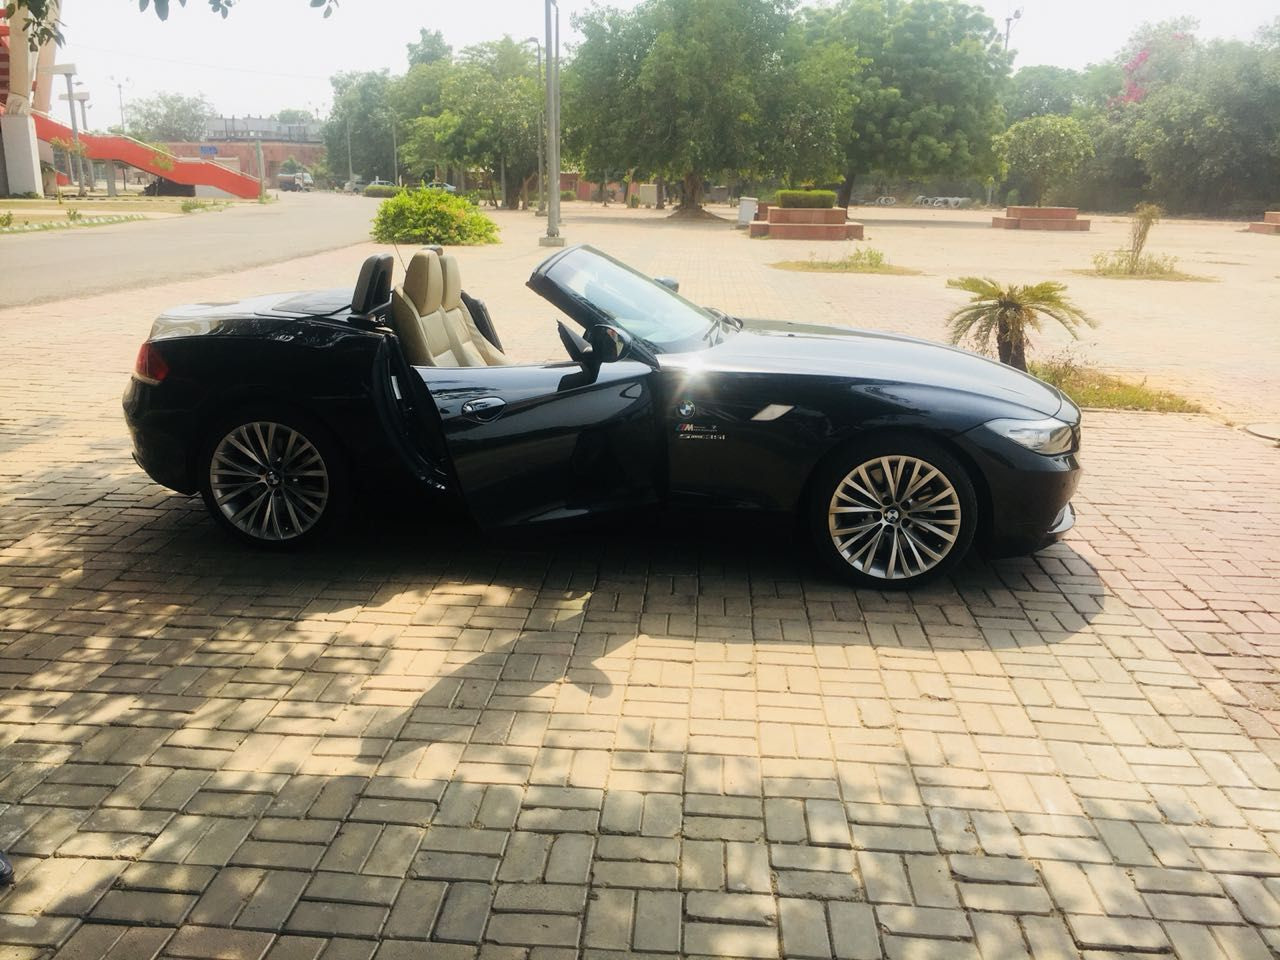 Used Bmw For Sale In Delhi New Delhi India At Salemycar Today Bmw For Sale Used Bmw For Sale Used Cars Online